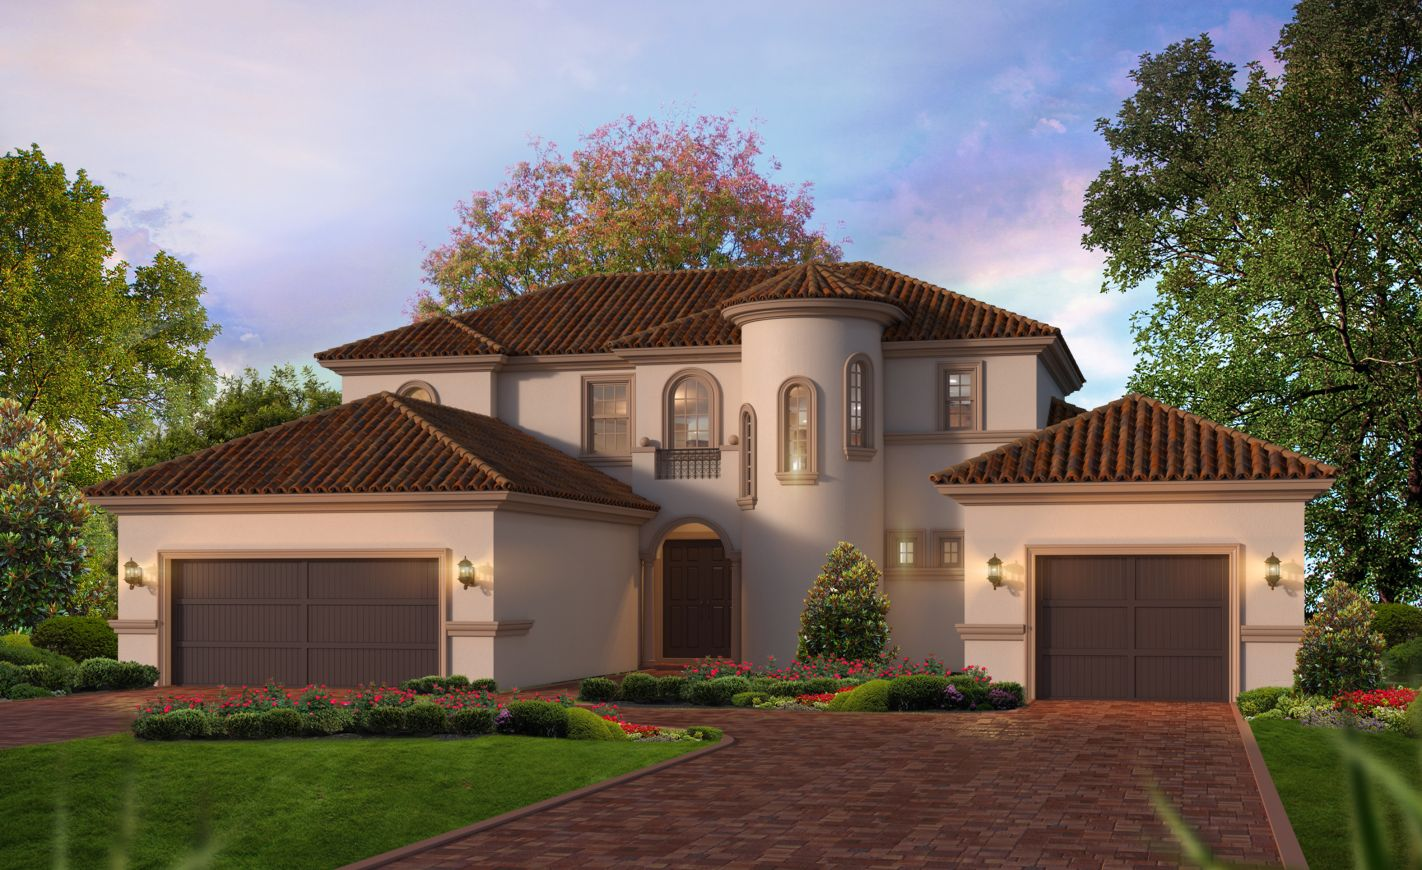 Jacksonville Homes for Sale - The Marabella at Tamaya